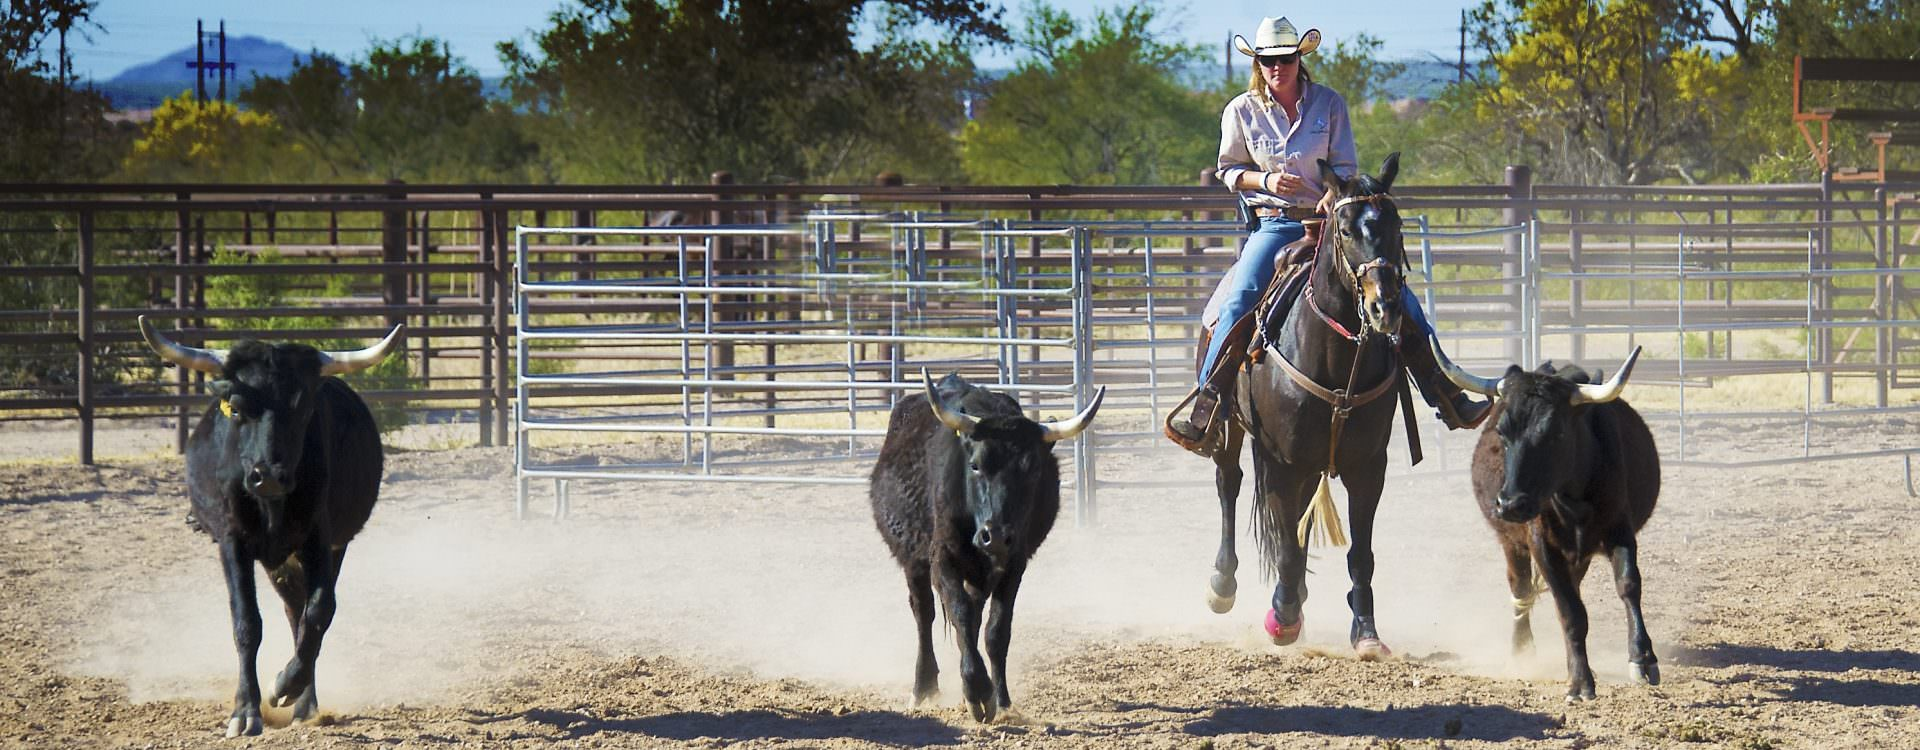 Herding steers at White Stallion Ranch - Arizona